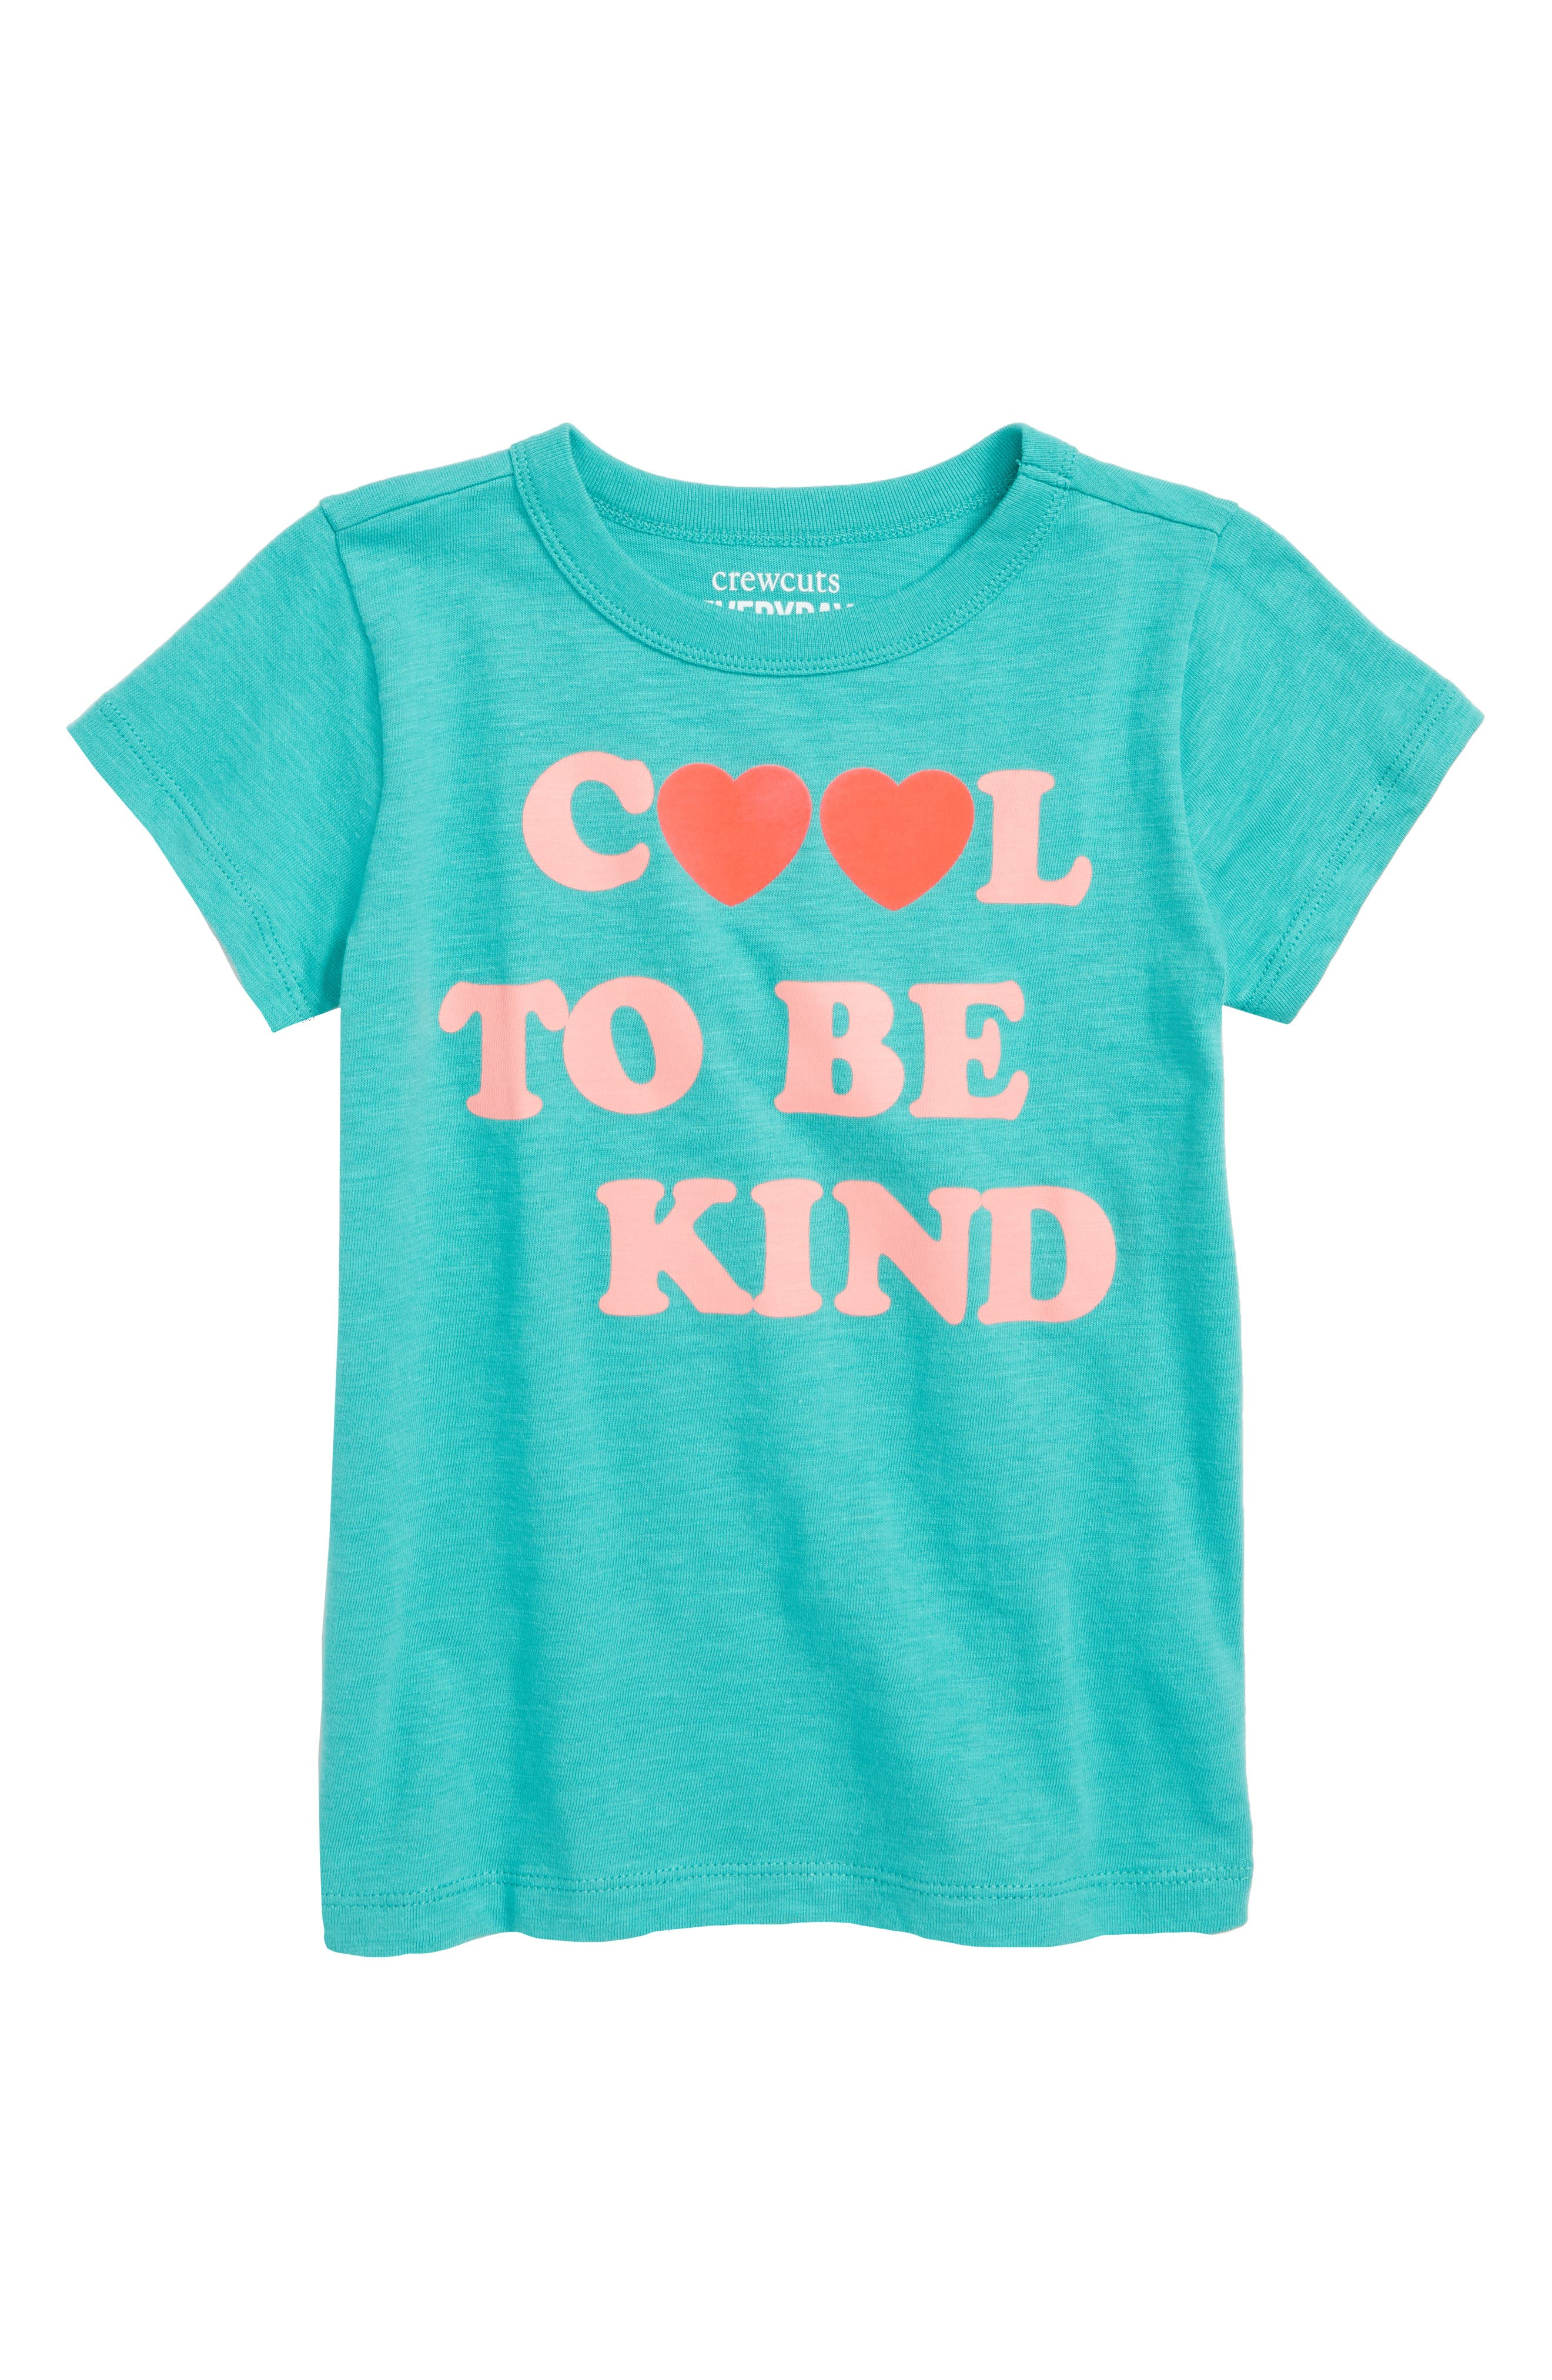 crewcuts by J. Crew Cool to Be Kind Graphic Tee,                             Main thumbnail 1, color,                             Emerald Sea